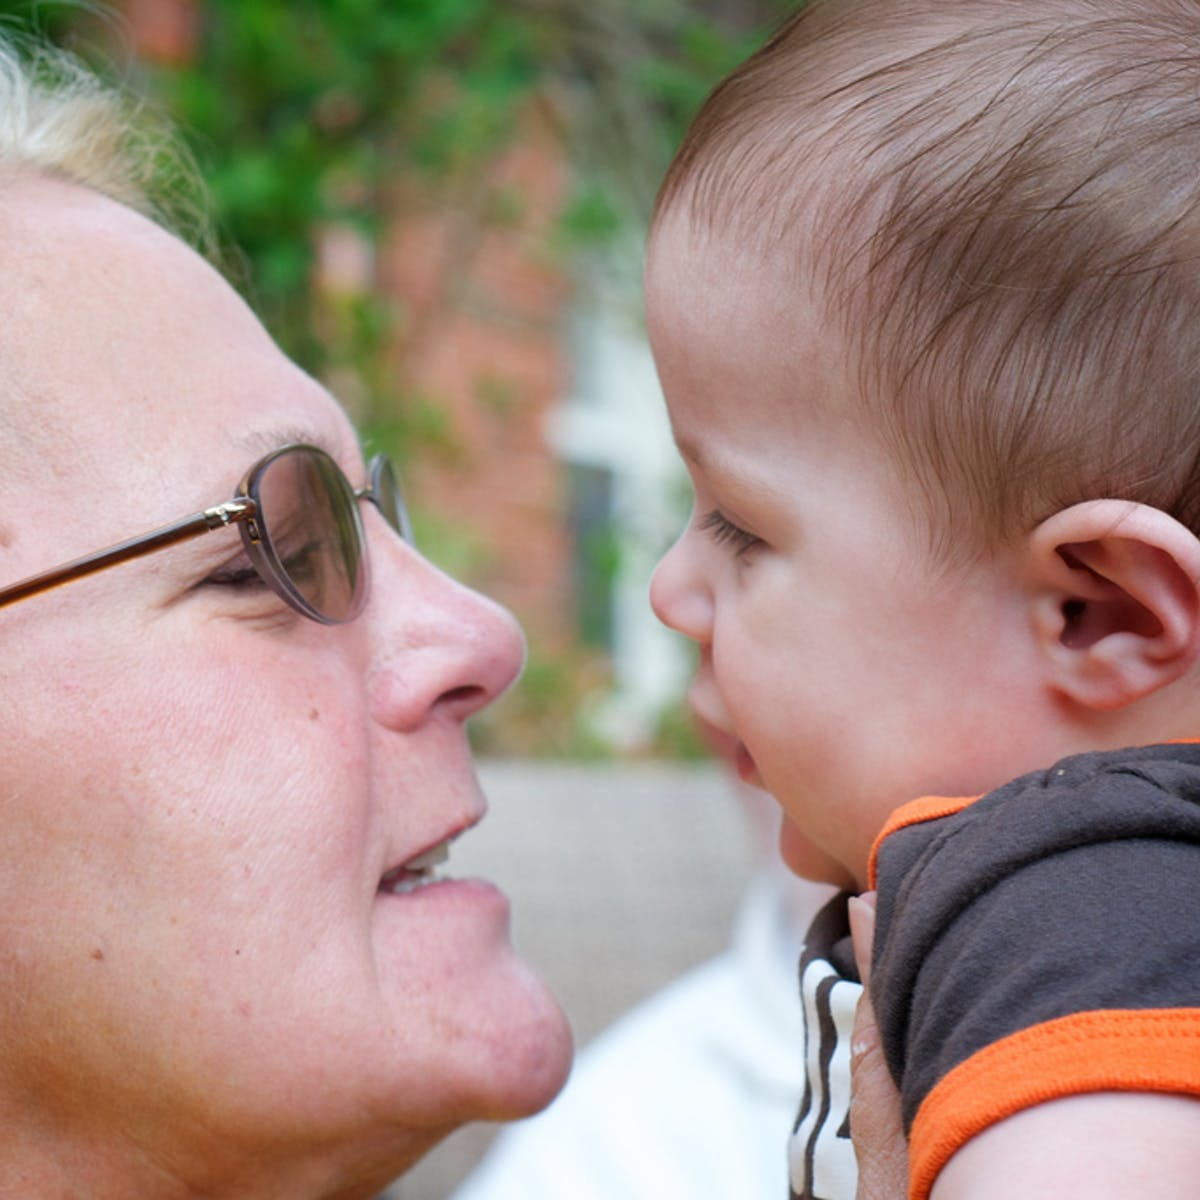 Face time: here's how infants learn from facial expressions